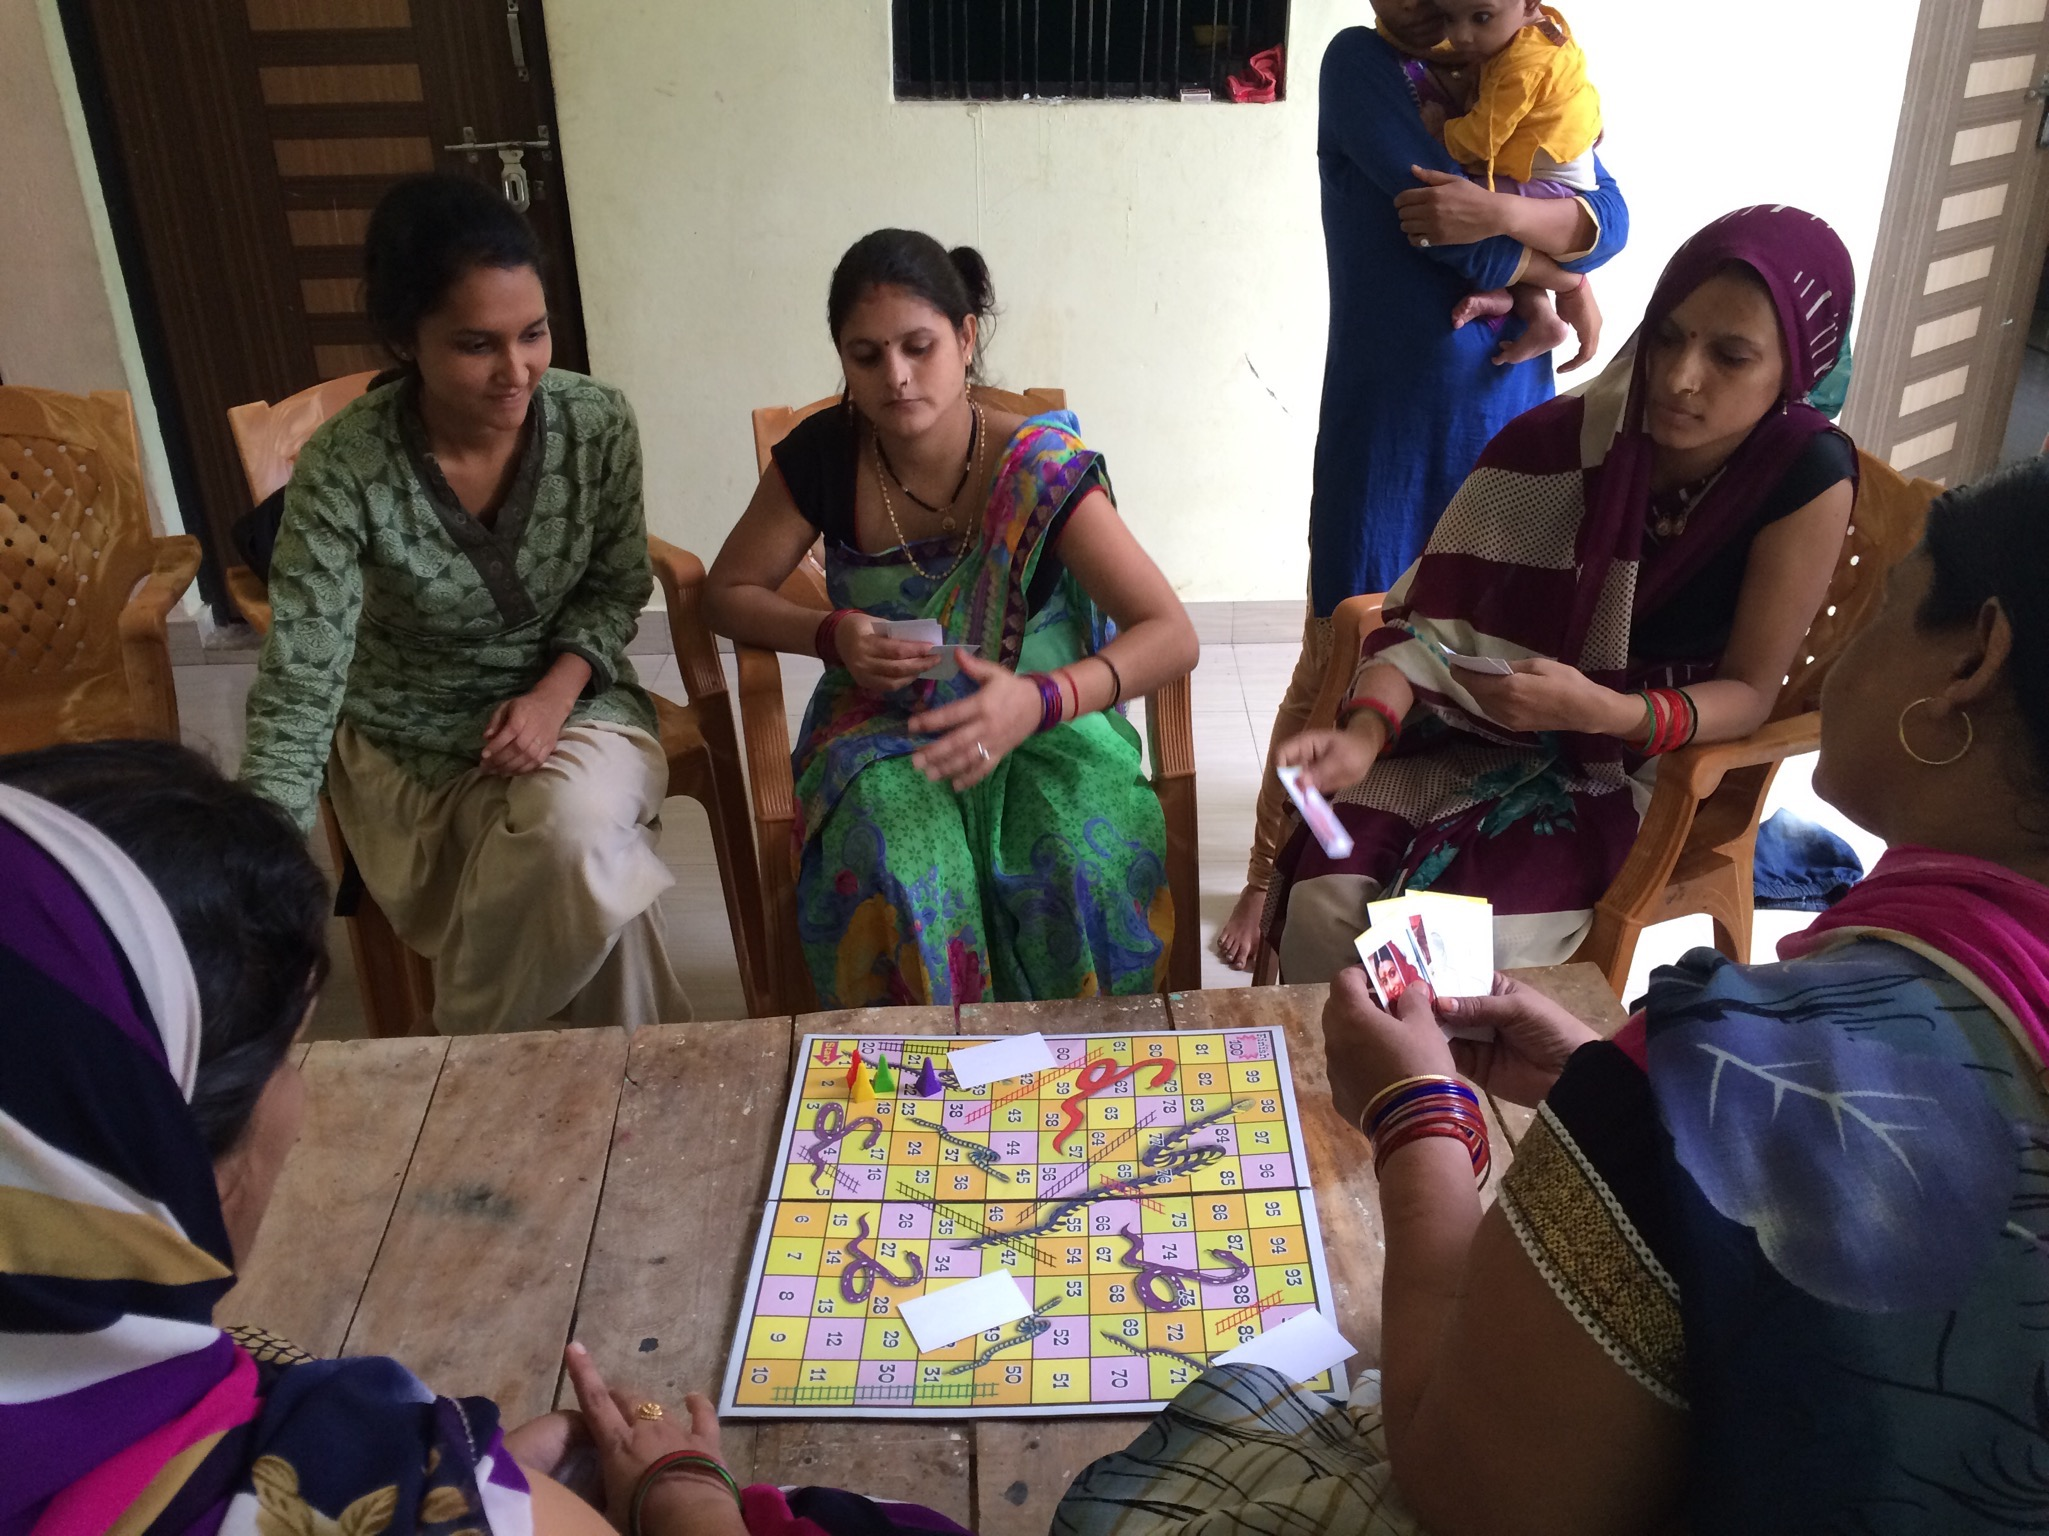 ROUND 1 : Check to see if the ladies are comfortable with dice and counters using a simple and traditional game of snakes & ladders